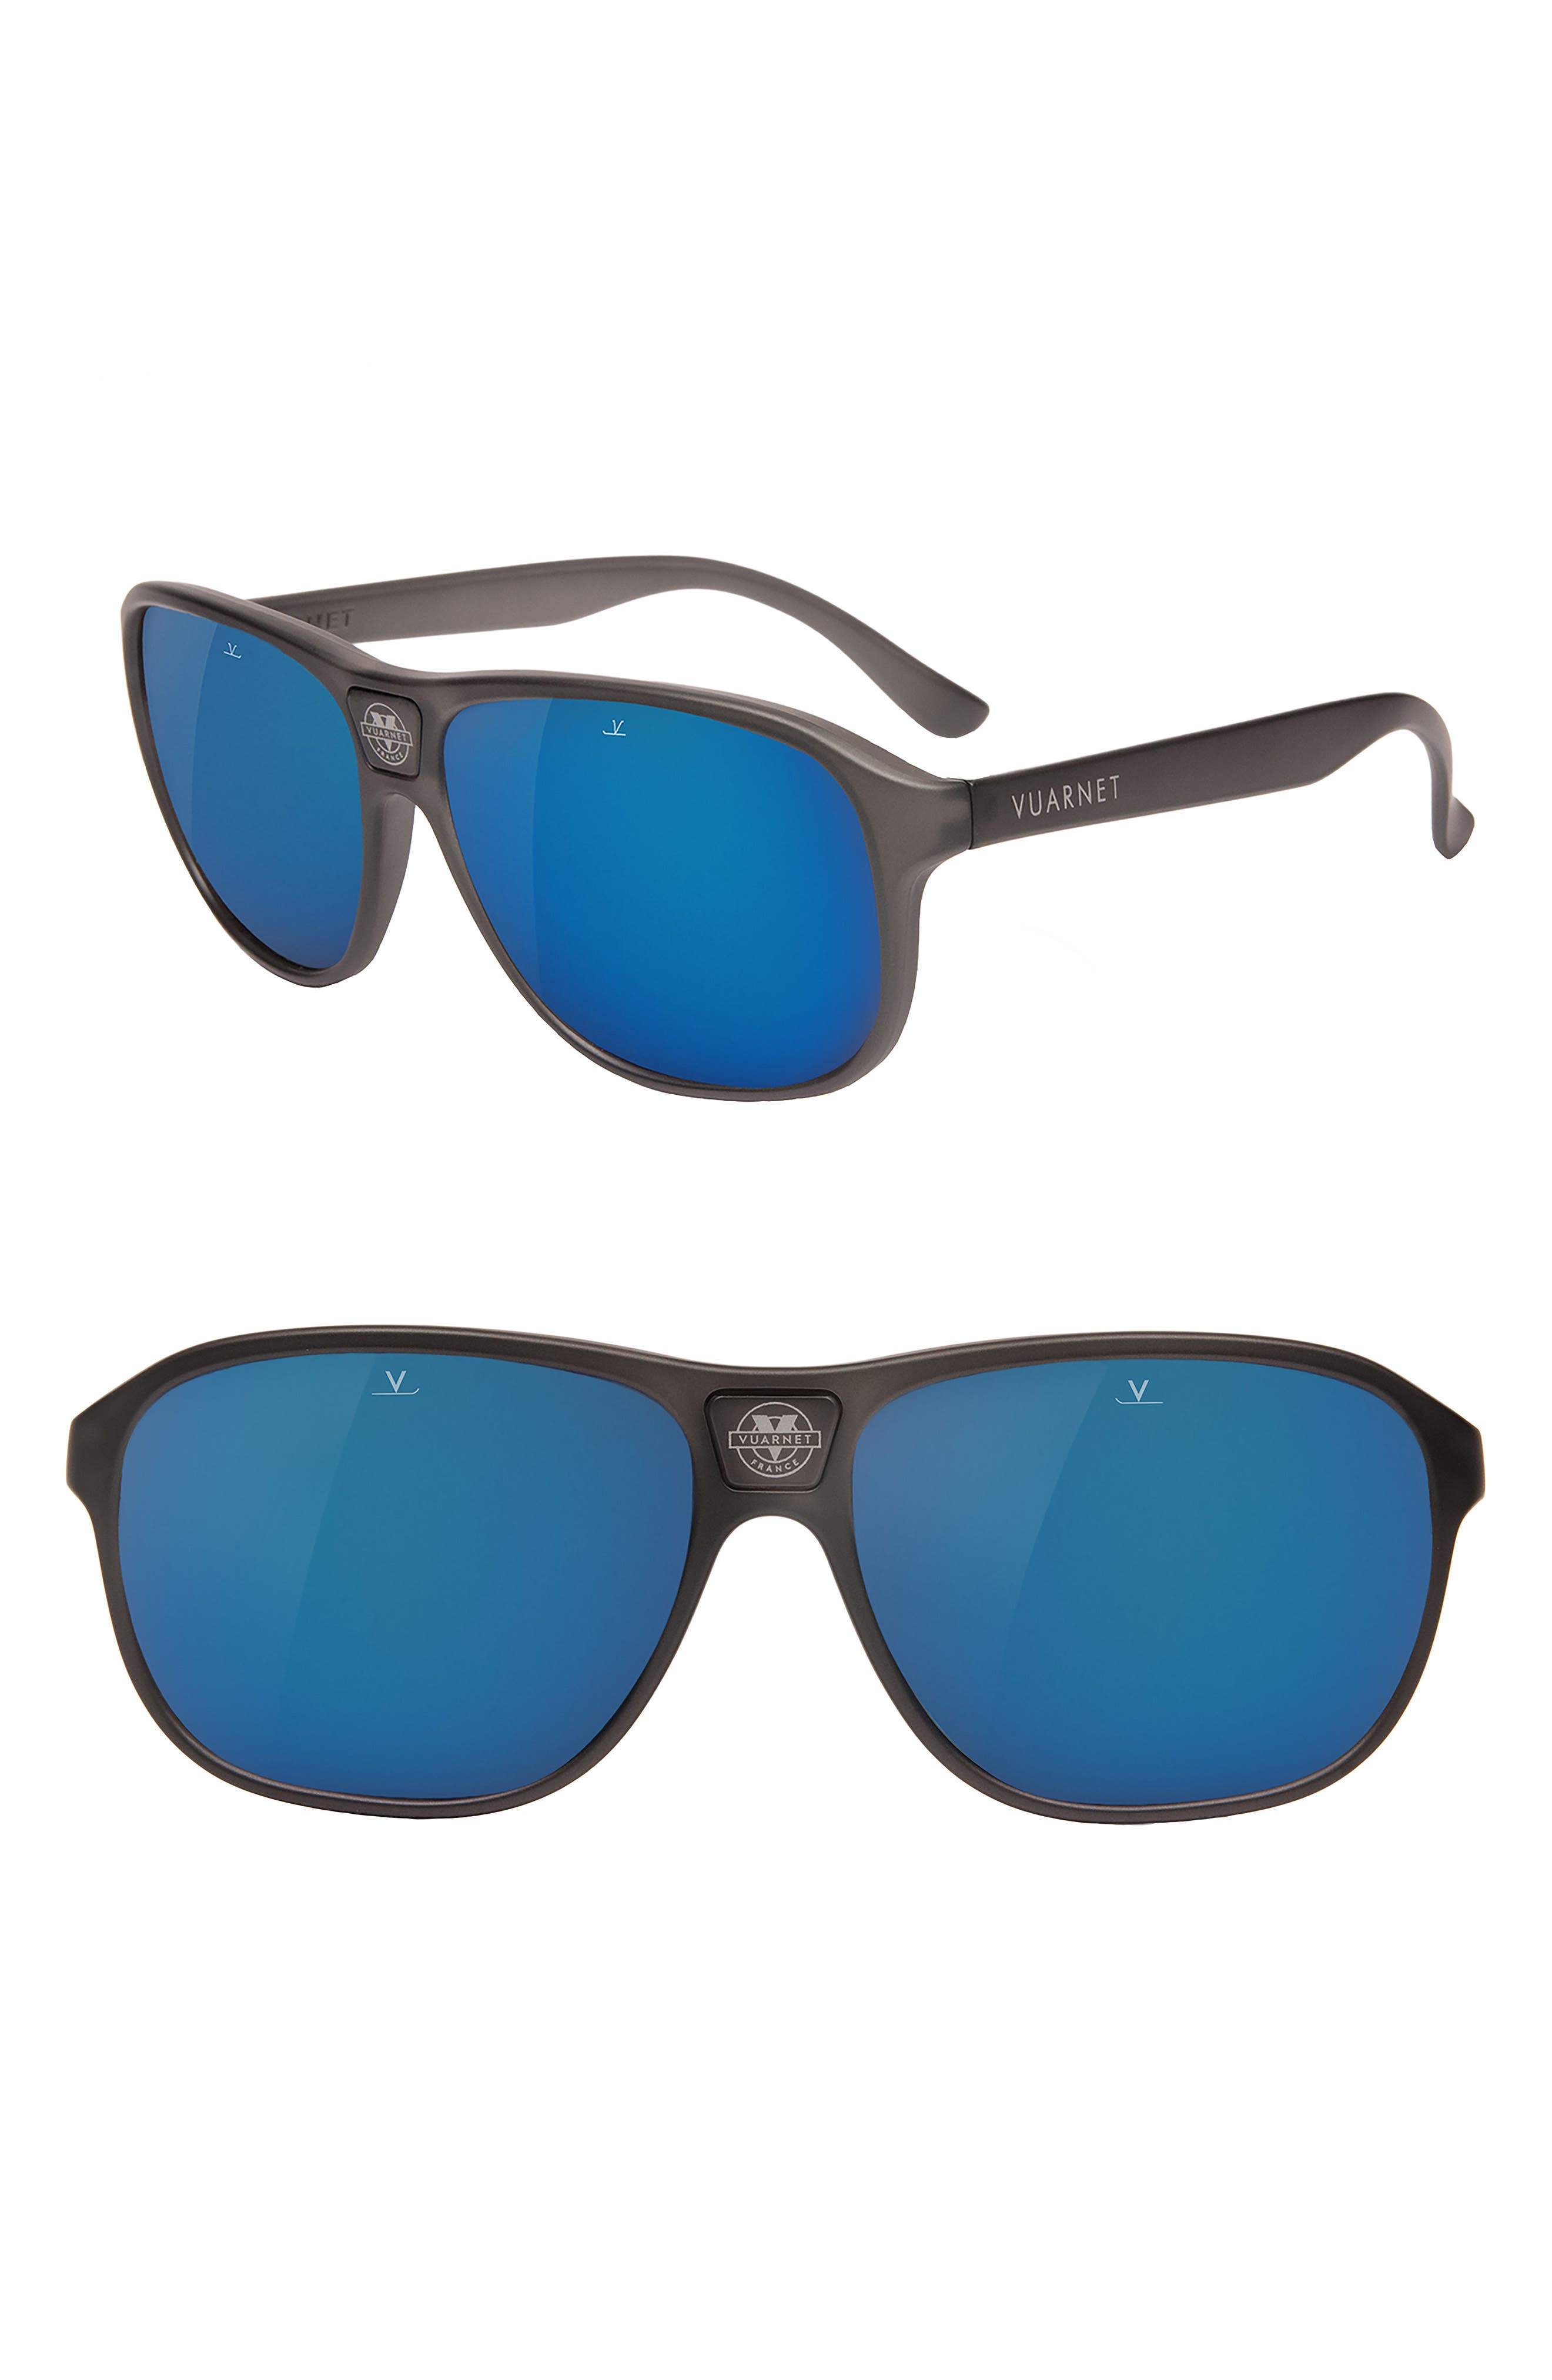 Legends 03 56mm Polarized Sunglasses,                         Main,                         color, Grey Polar Blue Flash